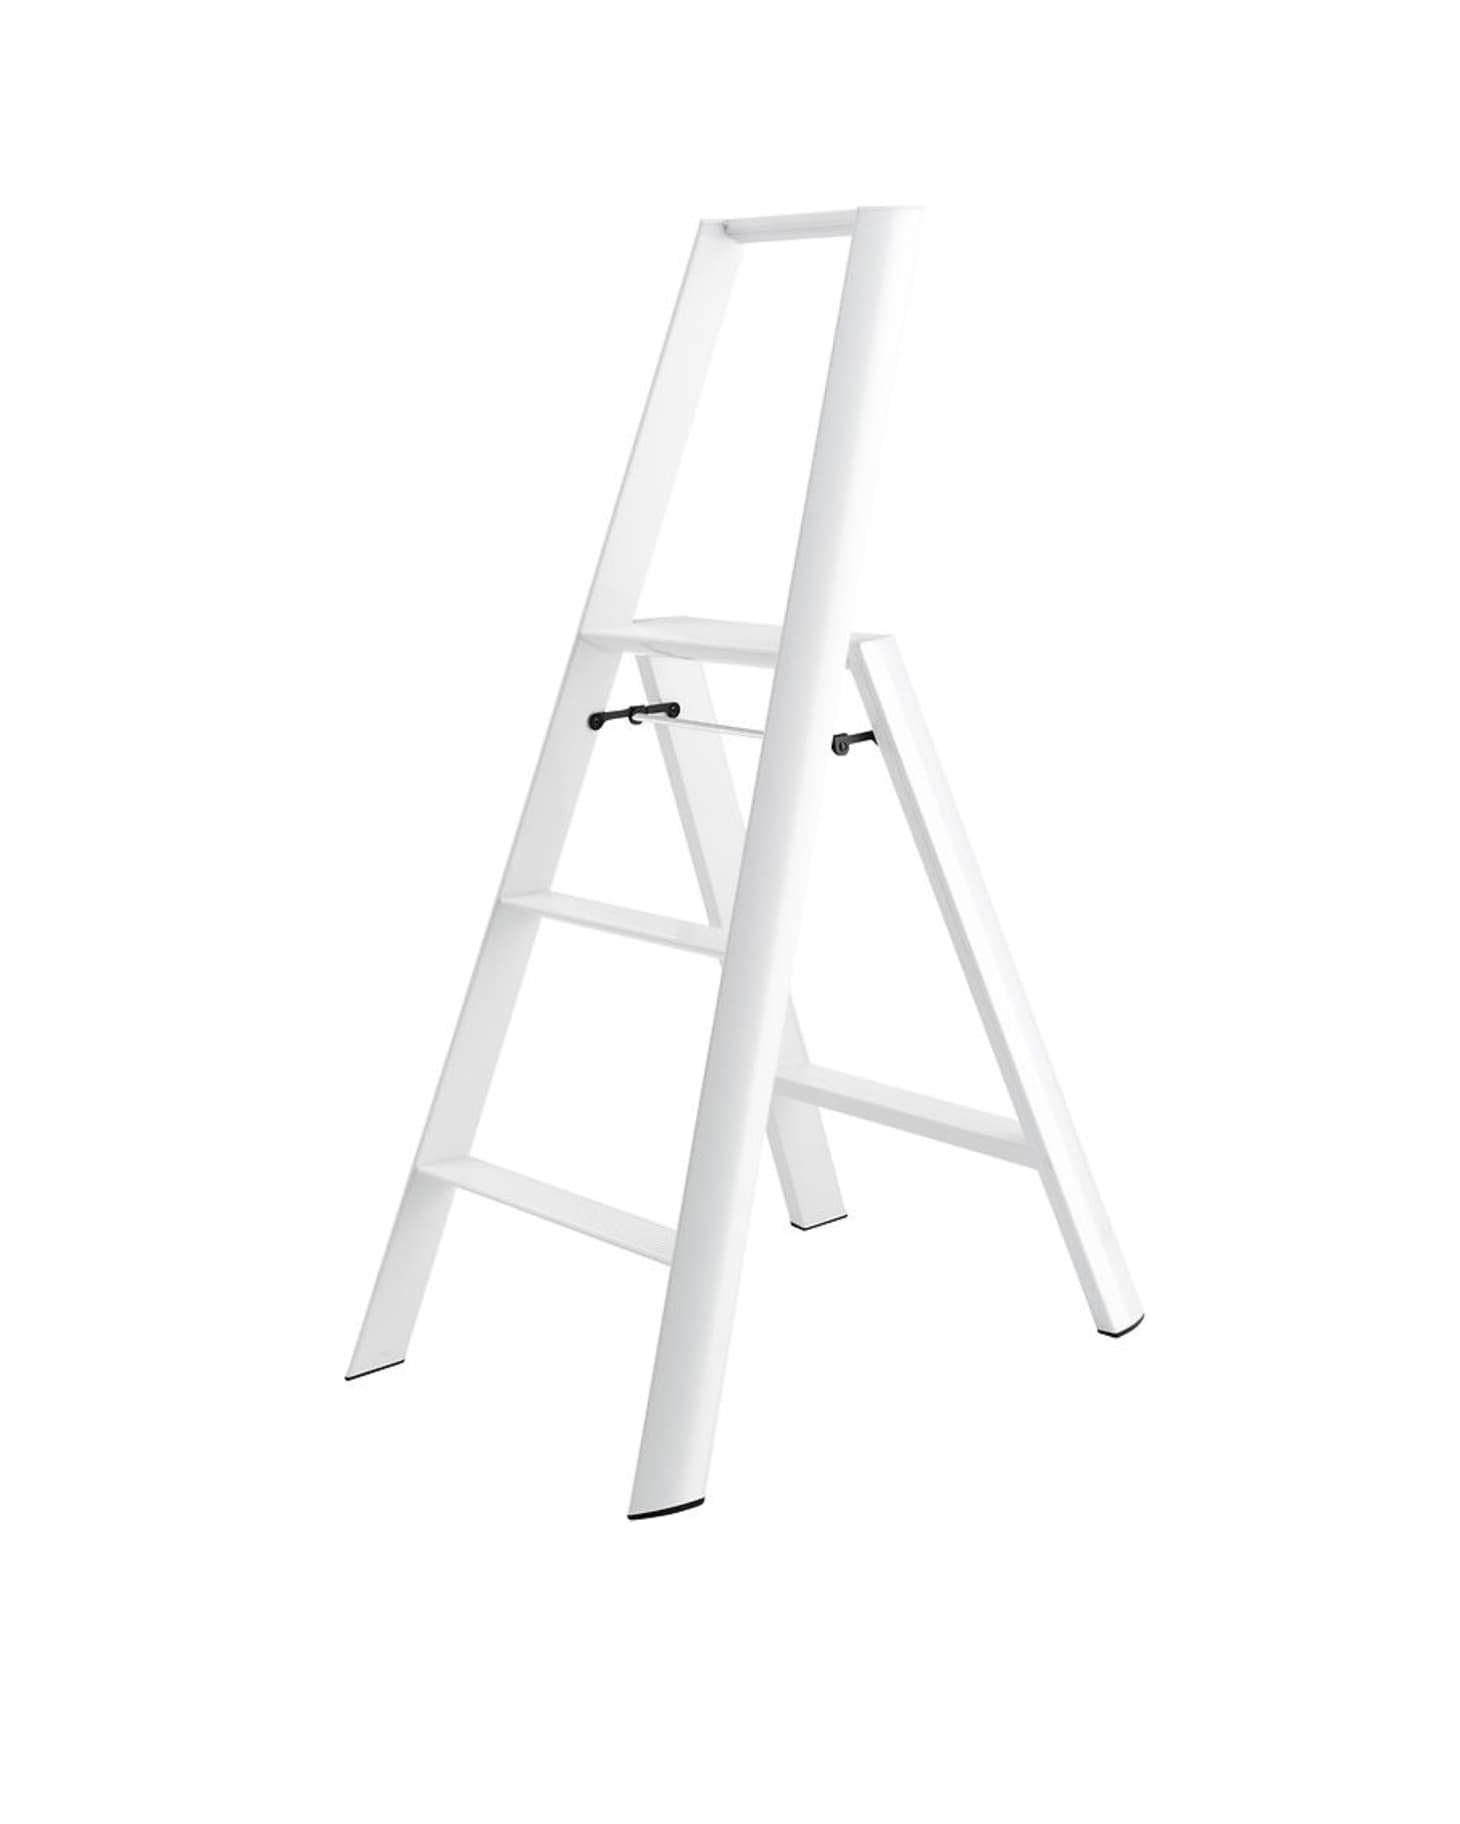 Tremendous The Best Step Stools And Step Stool Diy Ideas Apartment Alphanode Cool Chair Designs And Ideas Alphanodeonline